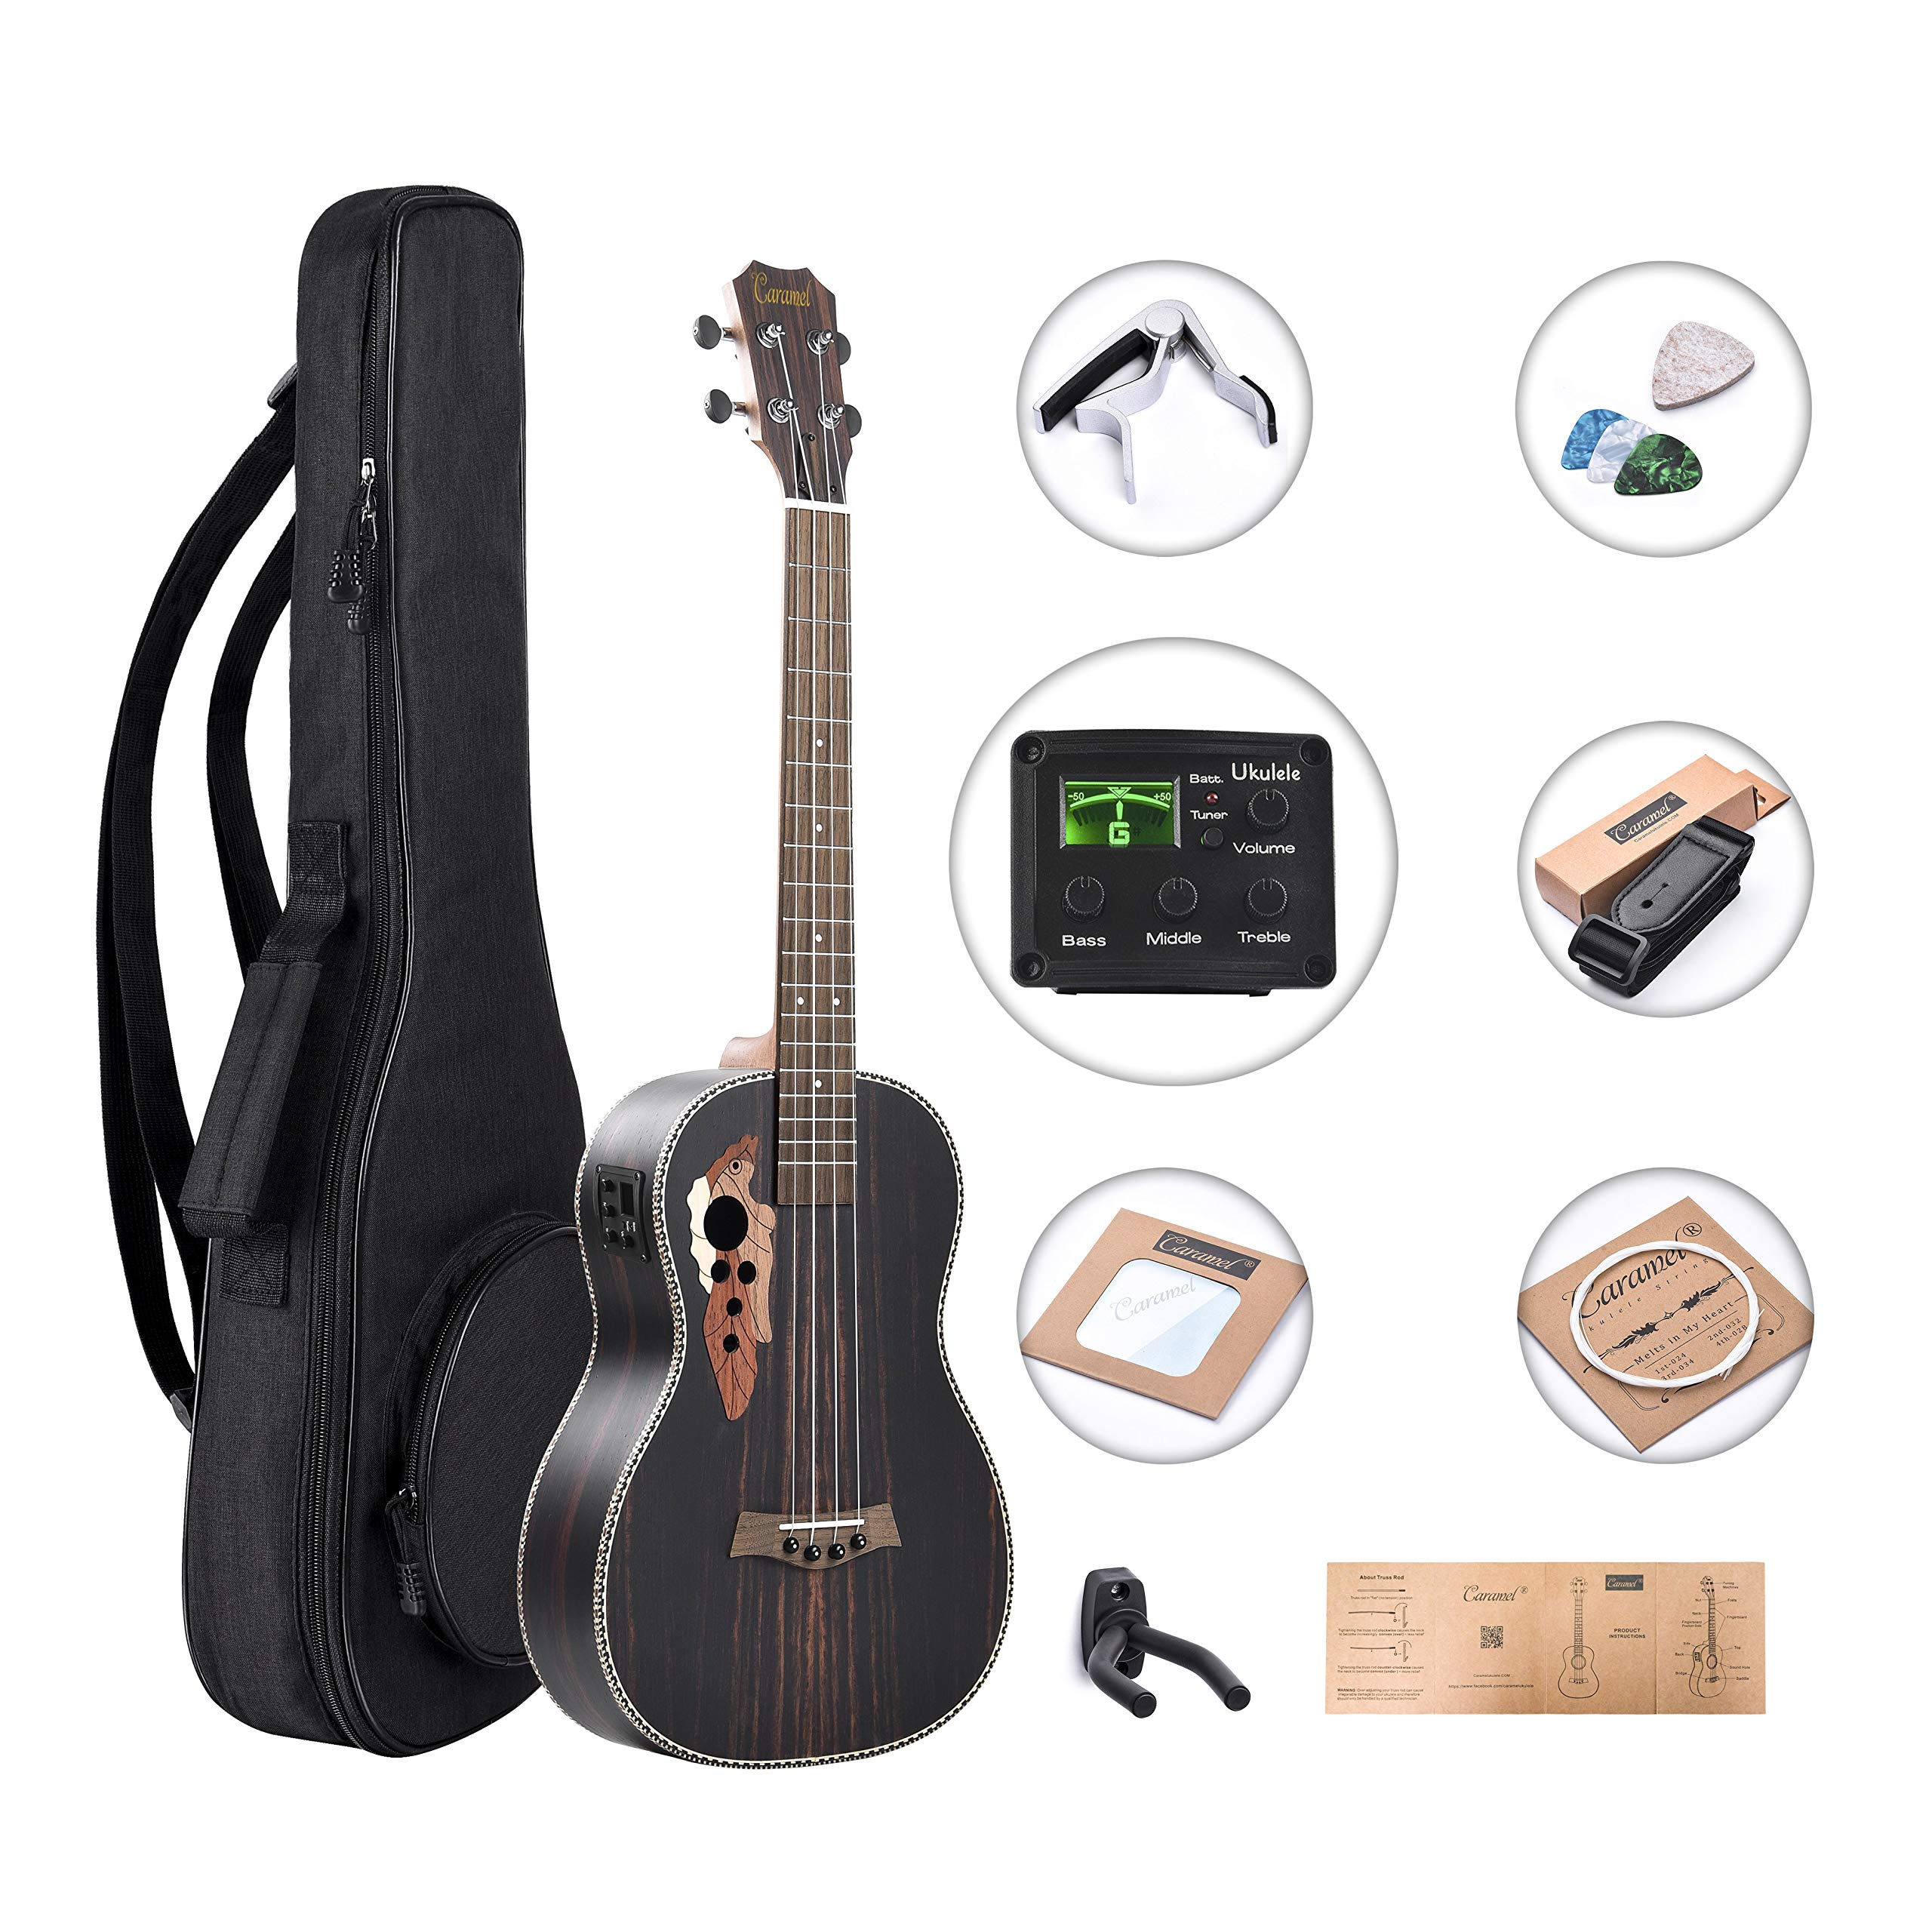 Caramel CB904 Ebony Baritone Acoustic Electric Ukulele with Truss Rod with D-G-B-E Strings & free G-C-E-A strings, Padded Gig Bag, Strap and EQ cable